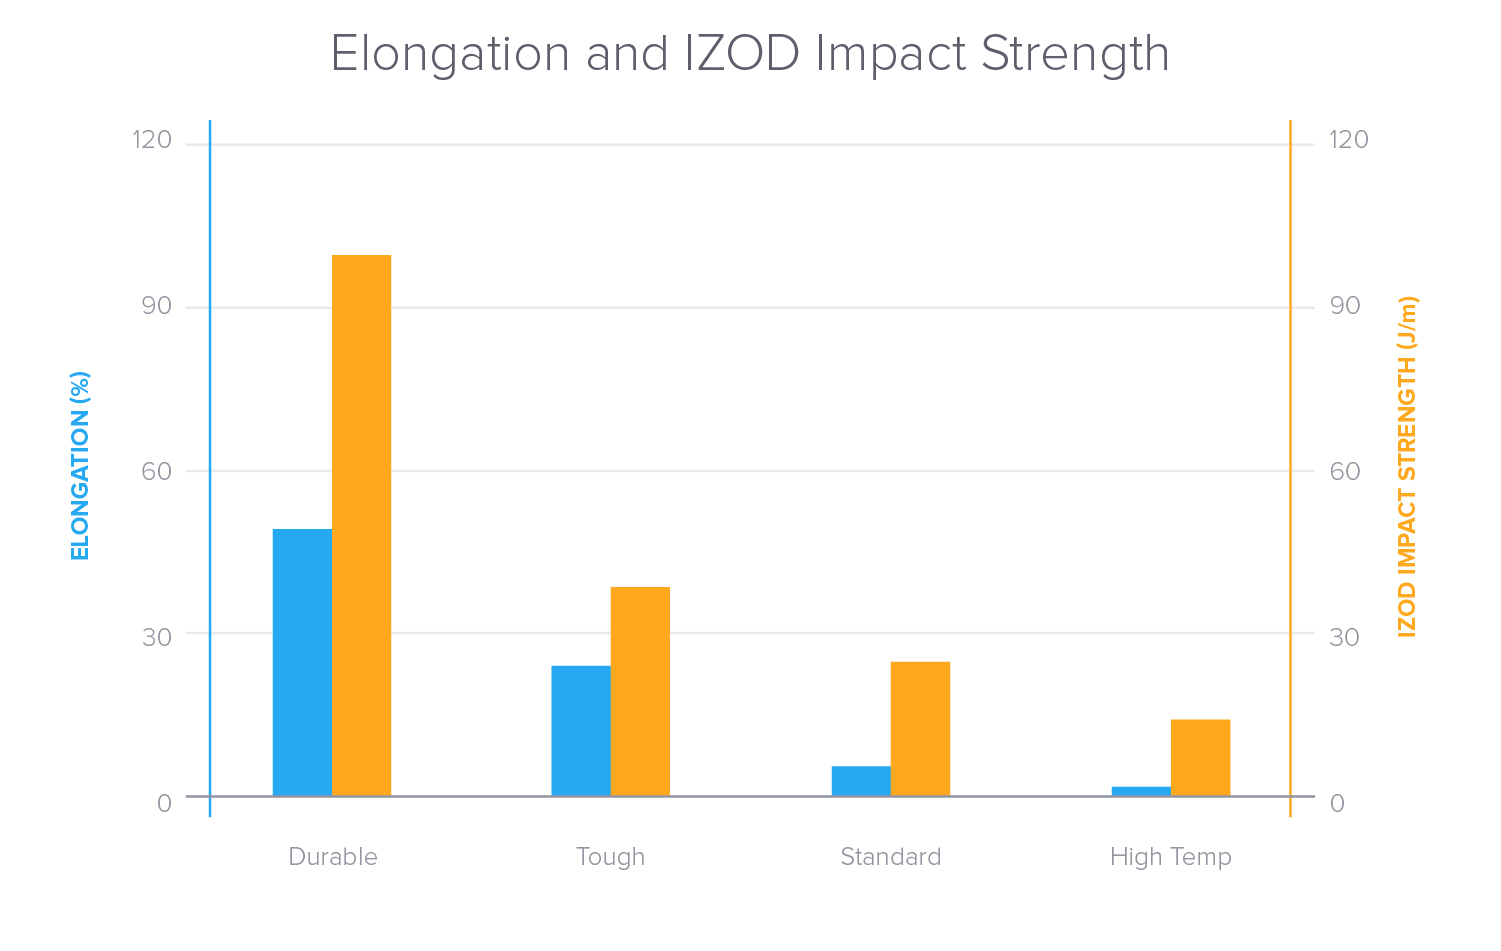 Comparative chart for elongation at break and impact strength for common SLA engineering and standard materials